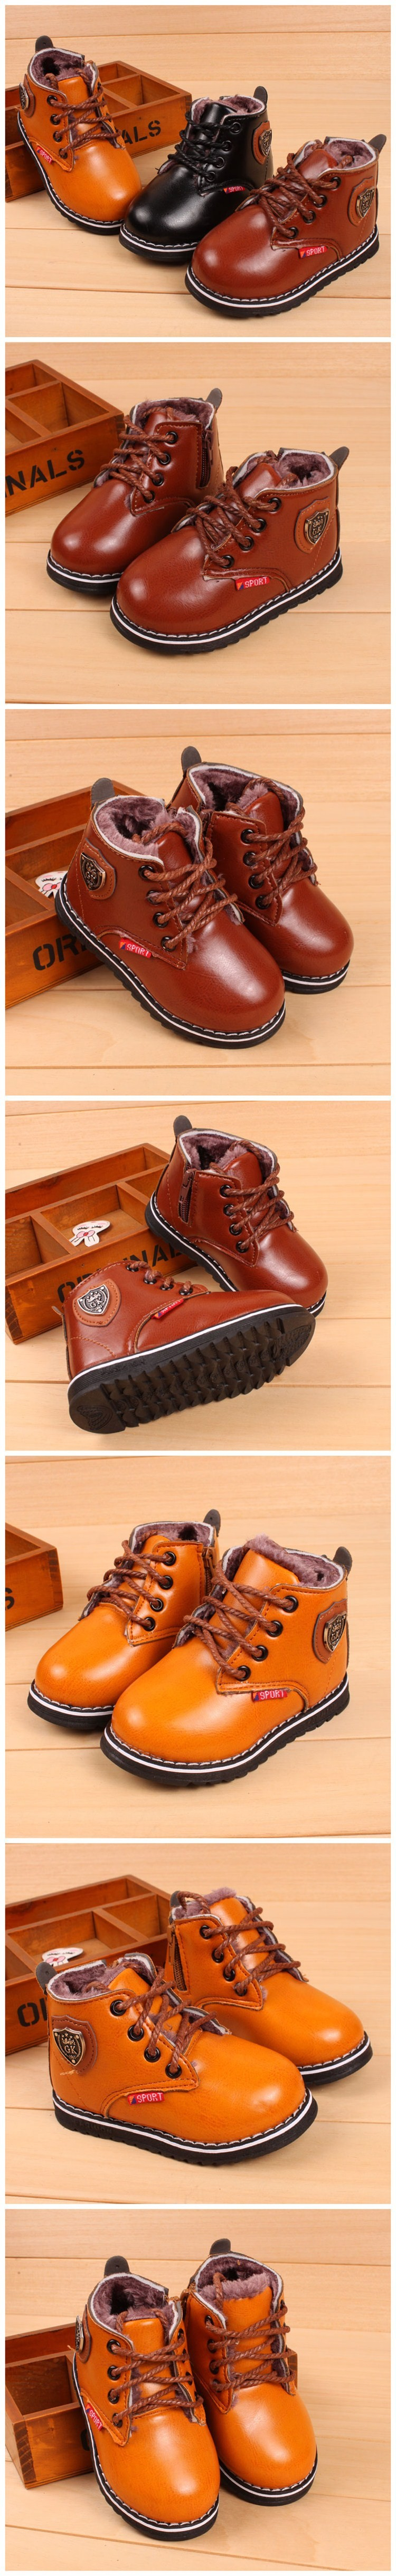 eb4257eb88d16 ⊱Winter Kids Leather Boots PLUSH INNER Thermal Boots Girls Boys ...